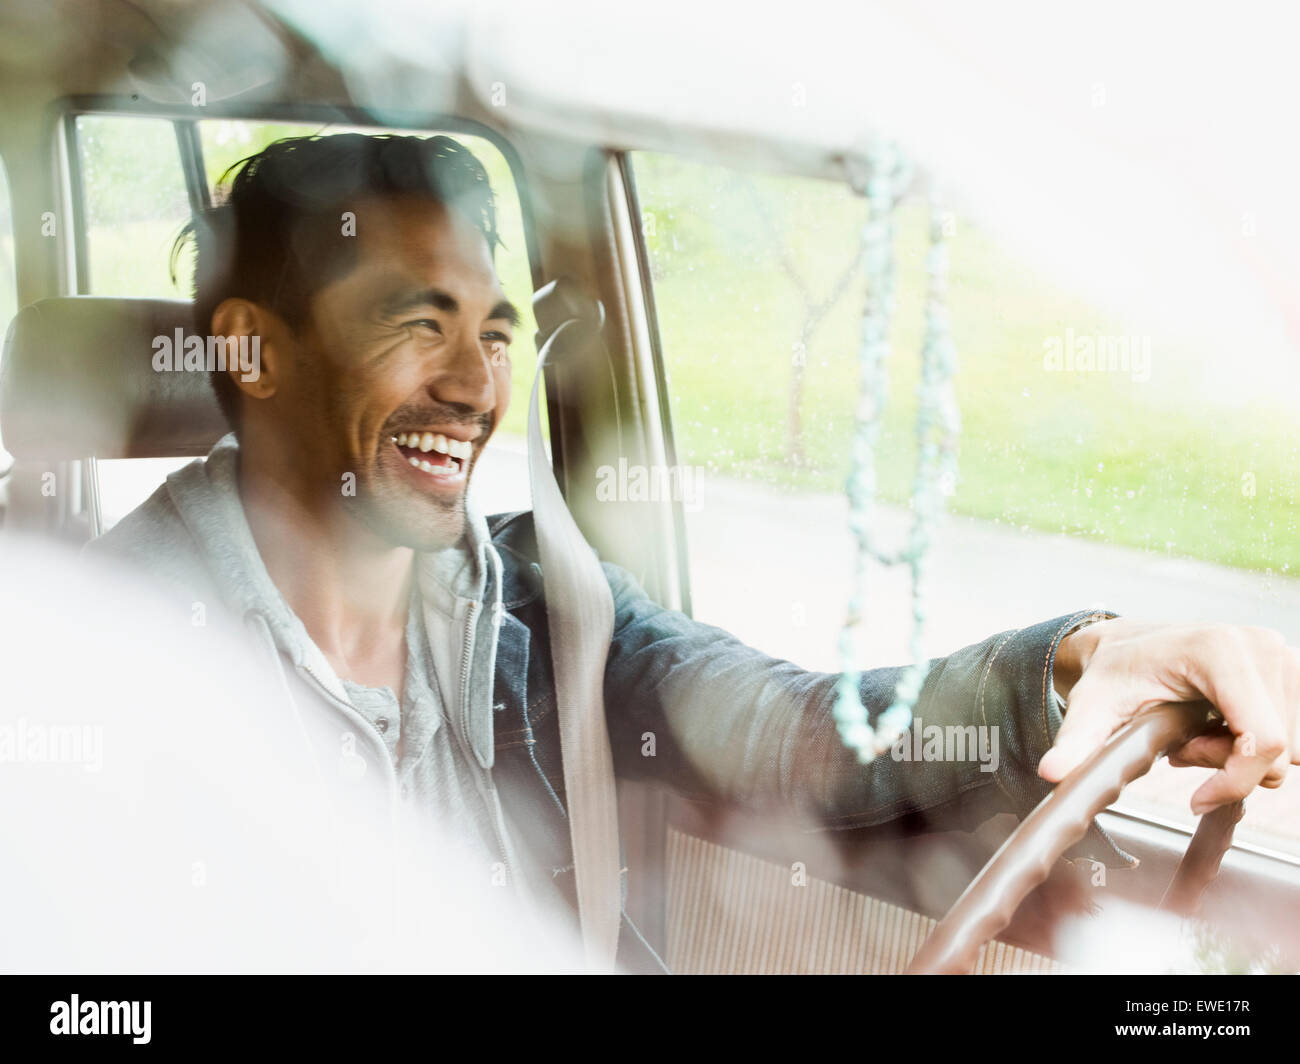 Young man in a car behind the steering wheel, driving - Stock Image